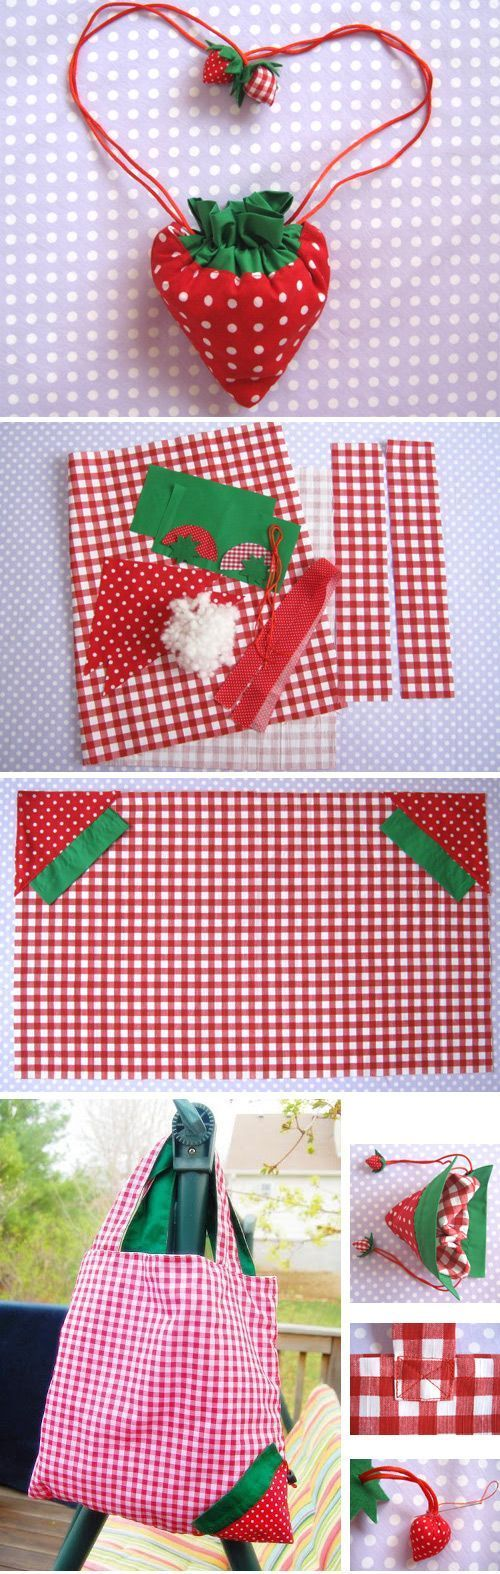 DIY Strawberry Shopper Bag Sewing Tutorial   If you love to make bags, check out http://www.sewinlove.com.au/tag/bags/ for more fun and easy sewing projects.